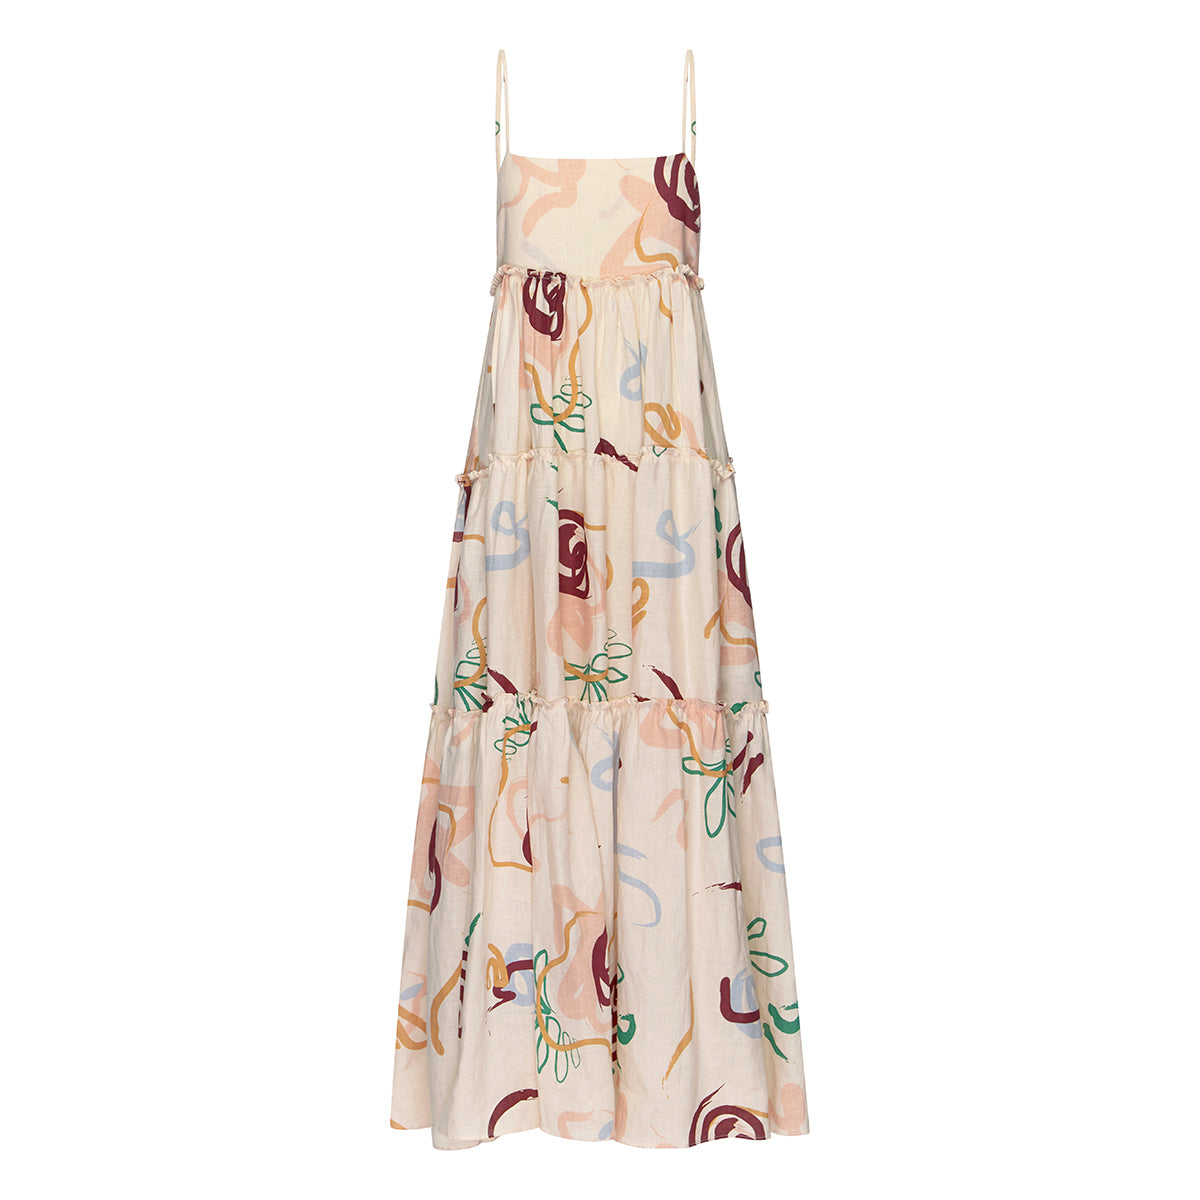 Lottie Tiered Maxi Dress - La Rose